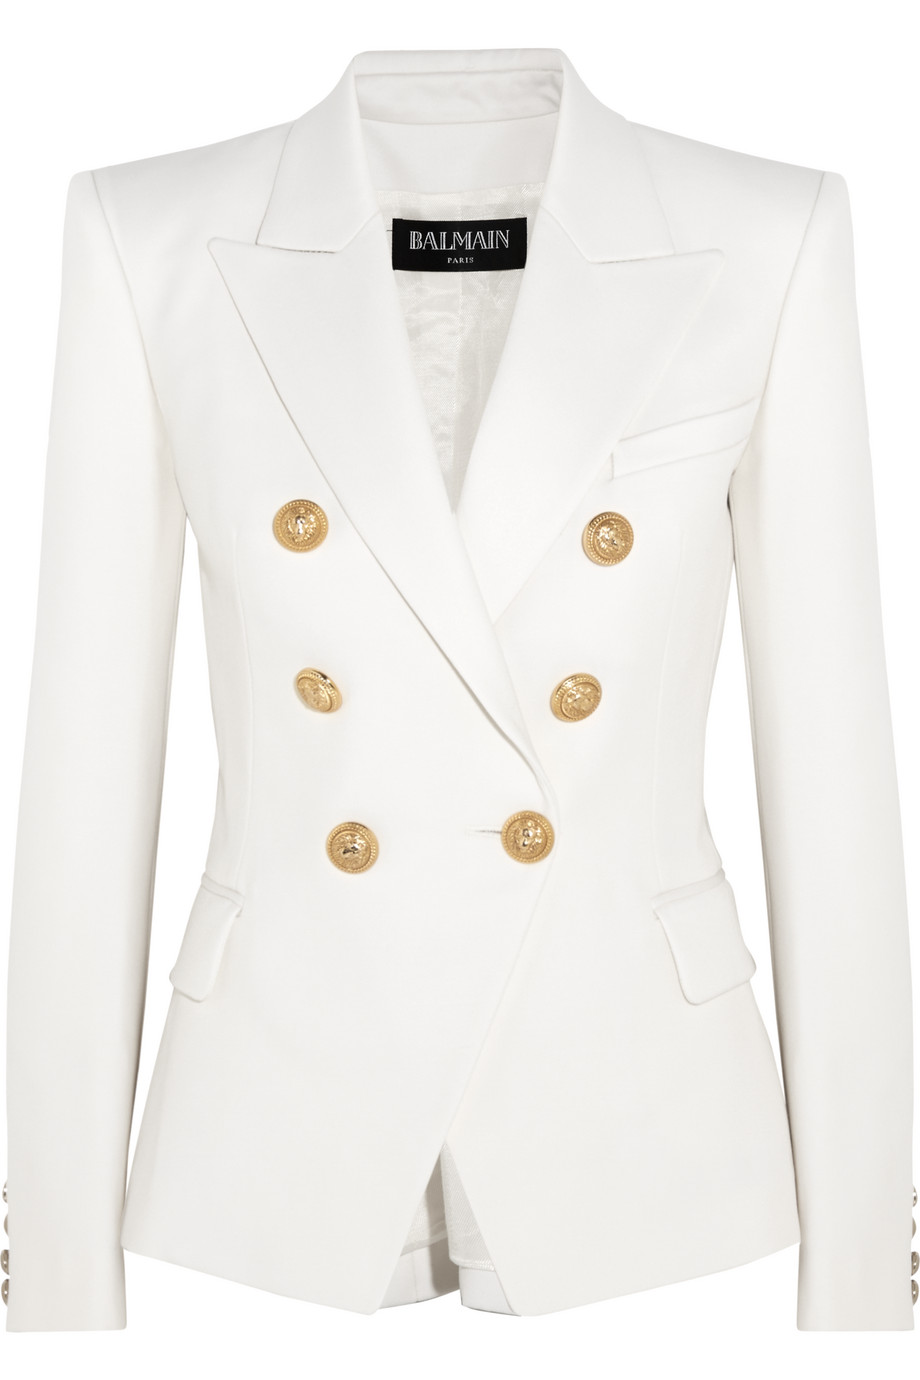 Balmain Double-Breasted Wool-Twill Blazer, White, Women's, Size: 38